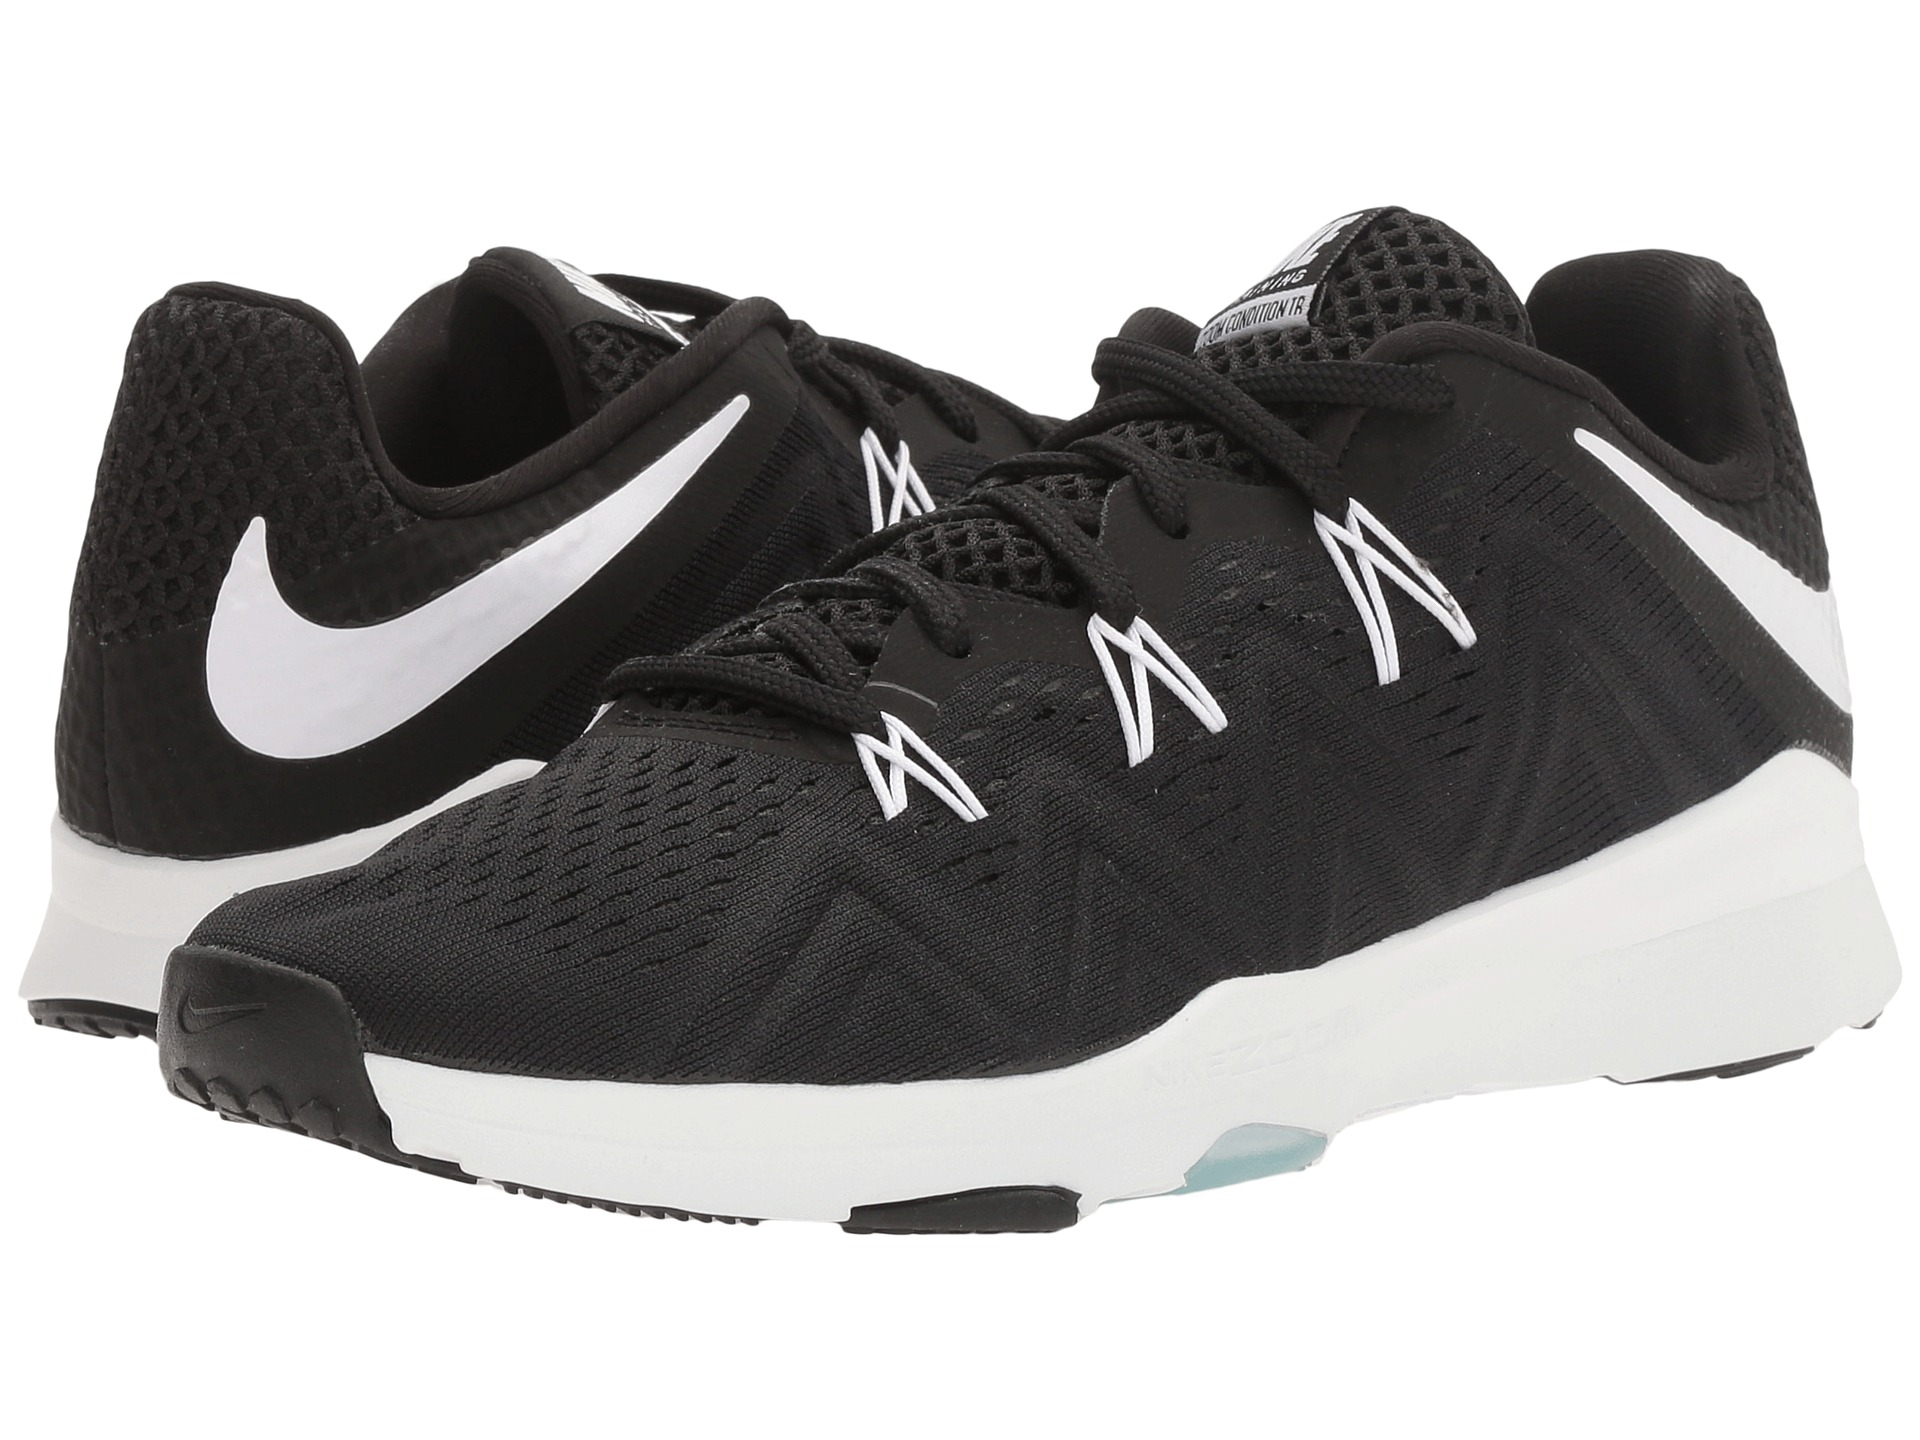 Nike Zoom Condition Tr Women S Cross Training Shoes Reviews